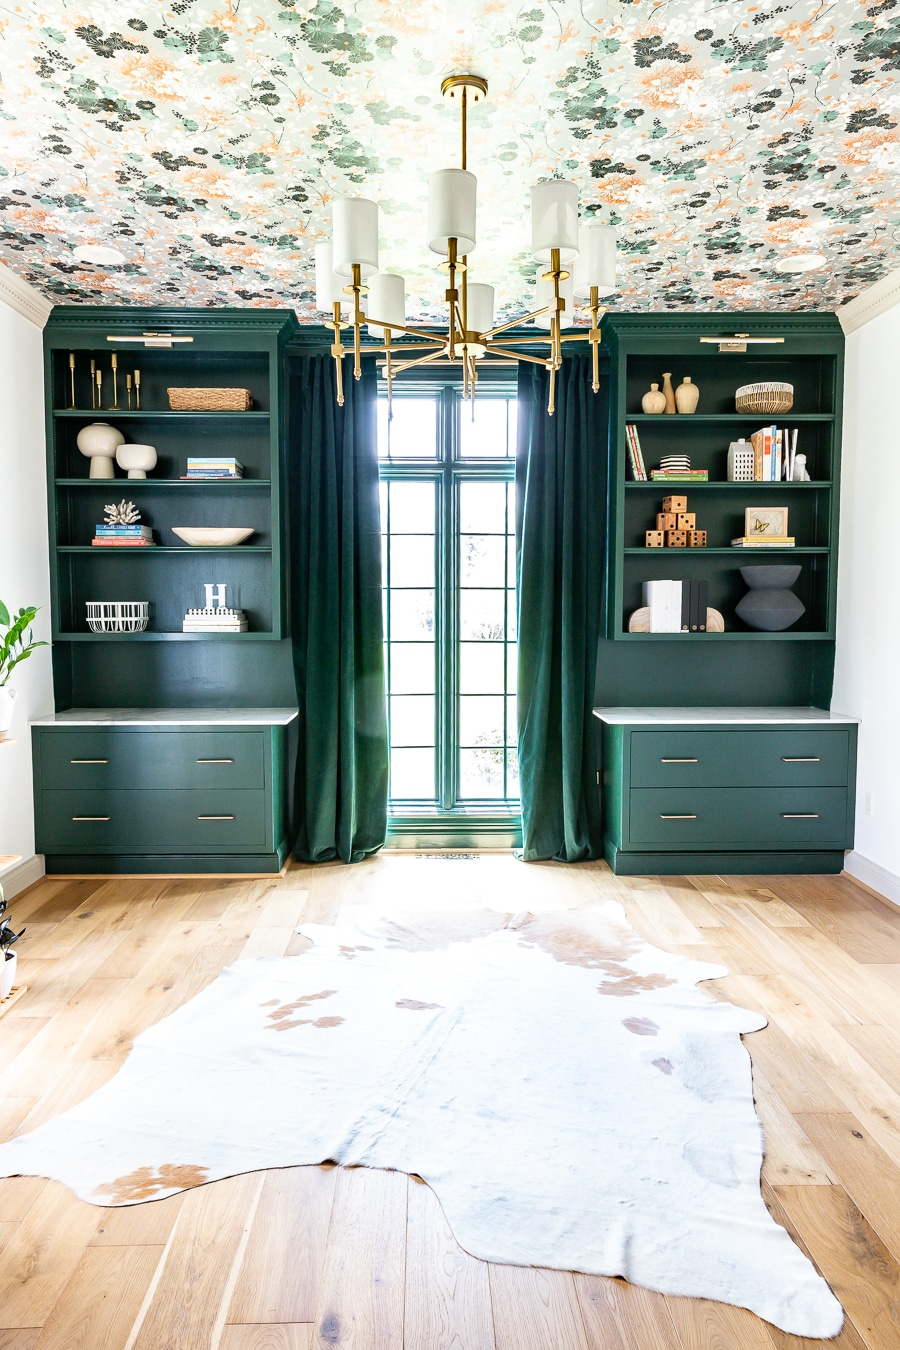 How to build DIY built-in cabinets the easy way